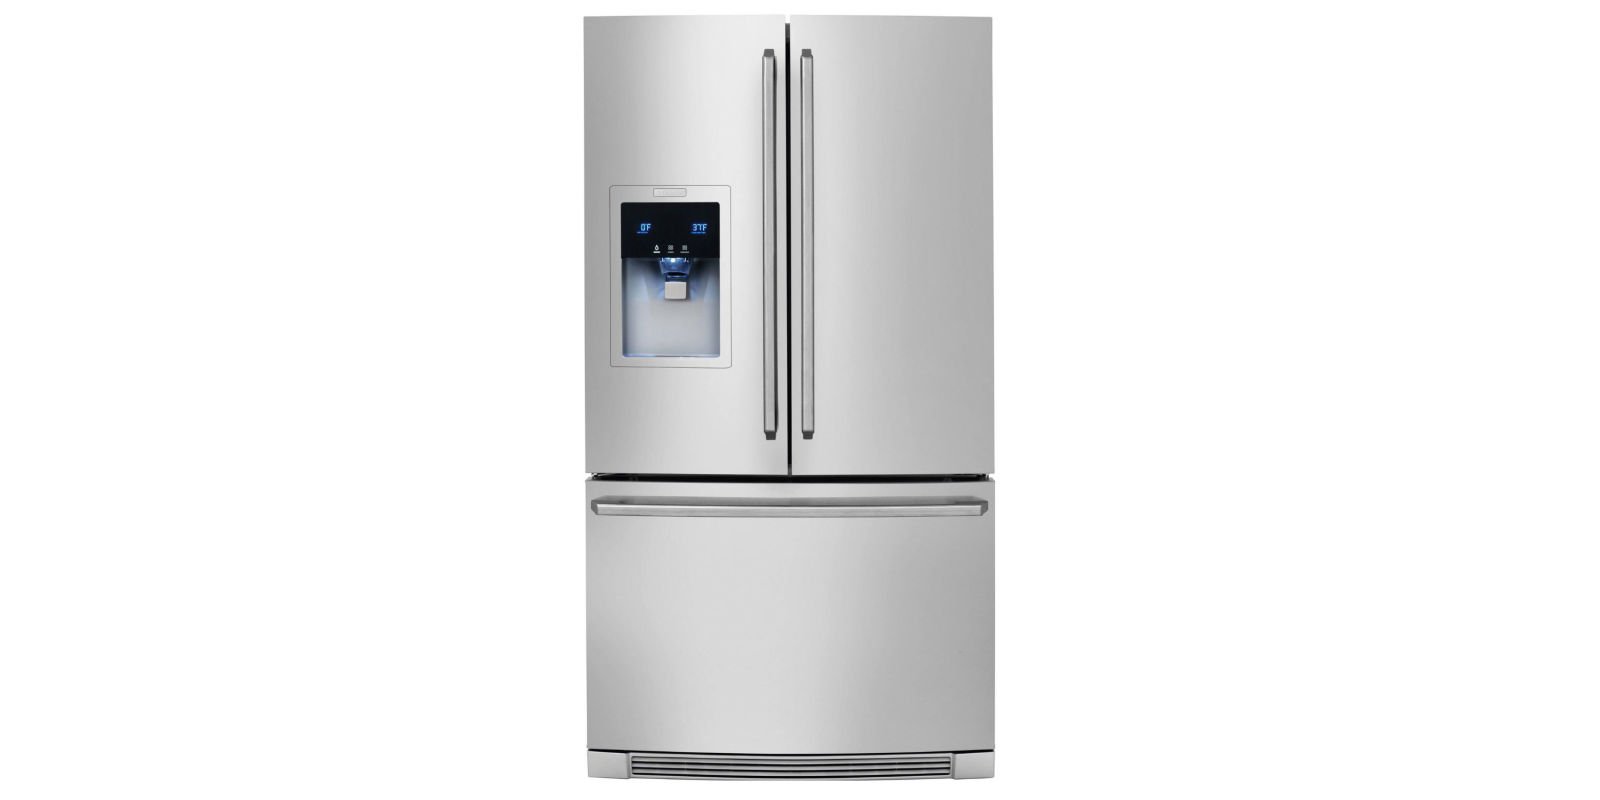 refrigerator electrolux. electrolux counter-depth french door refrigerator with wave-touch controls #ew23bc85k review